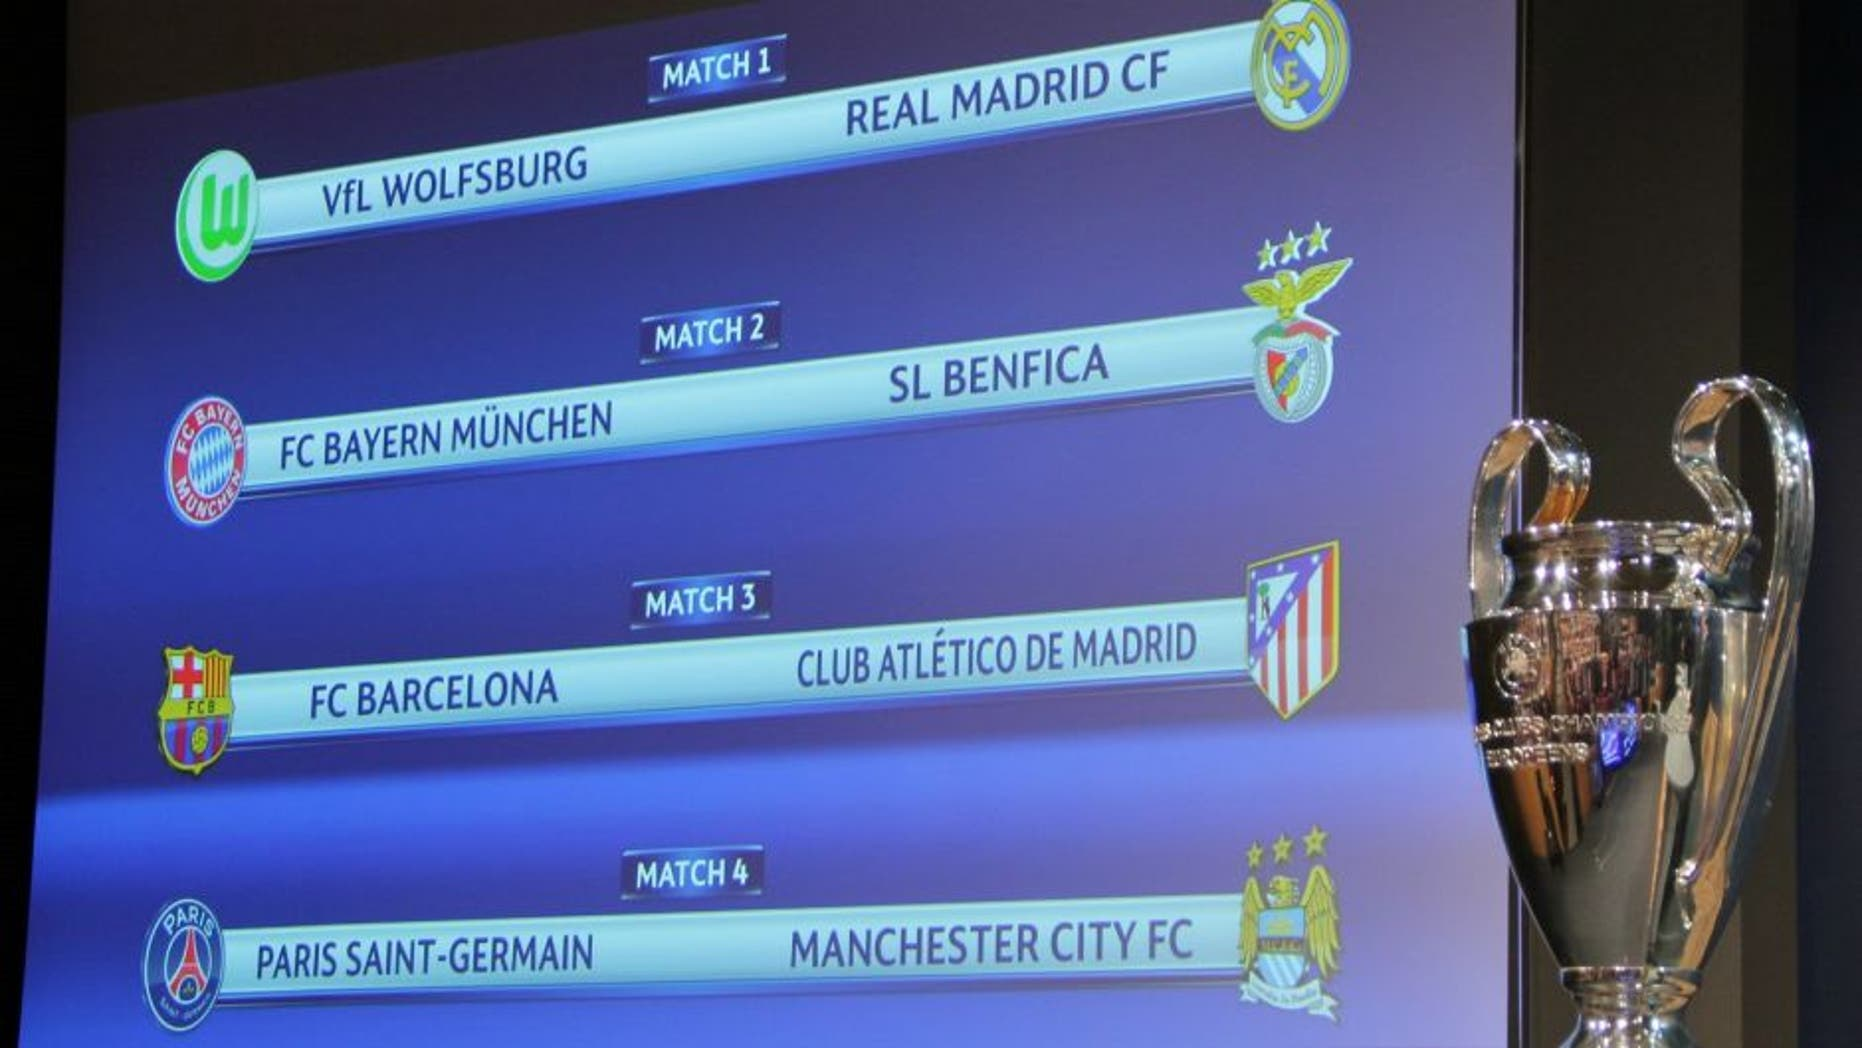 NYON, SWITZERLAND - MARCH 18: The results of the draw for the UEFA Champions league round of eight is displayed on a screen on March 18, 2016 at the European football organization's headquarters in Nyon, Switzerland. (Photo by Fatih Erel/Anadolu Agency/Getty Images)